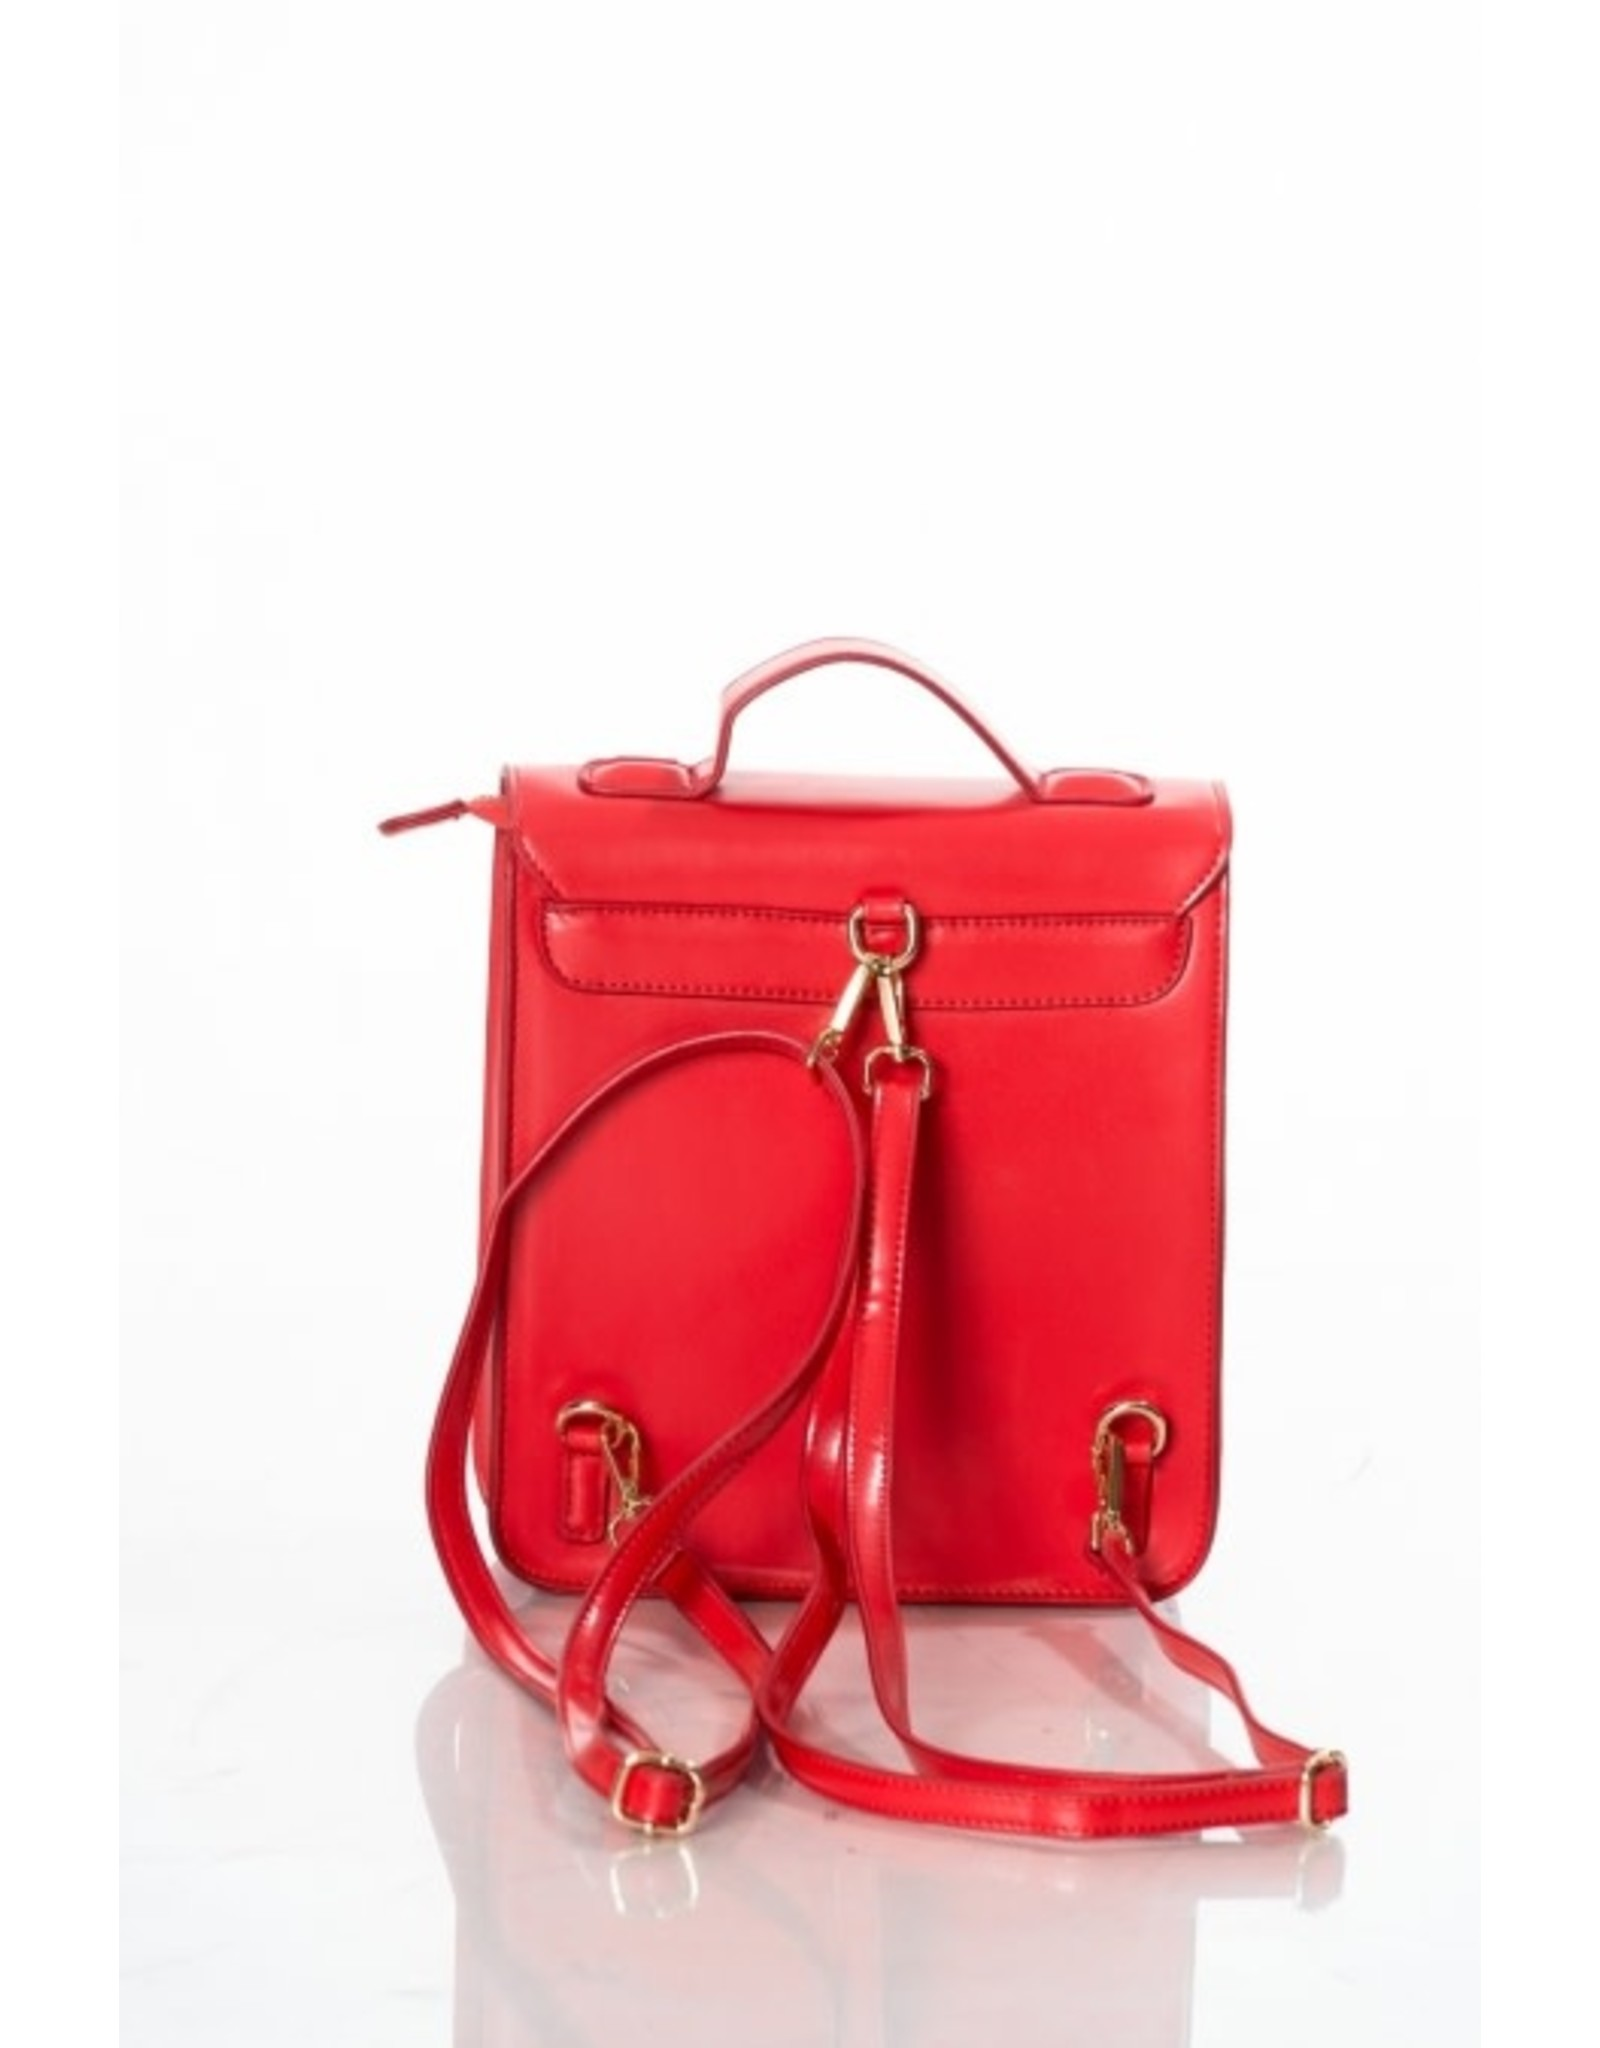 BANNED - Cohen Bag Red